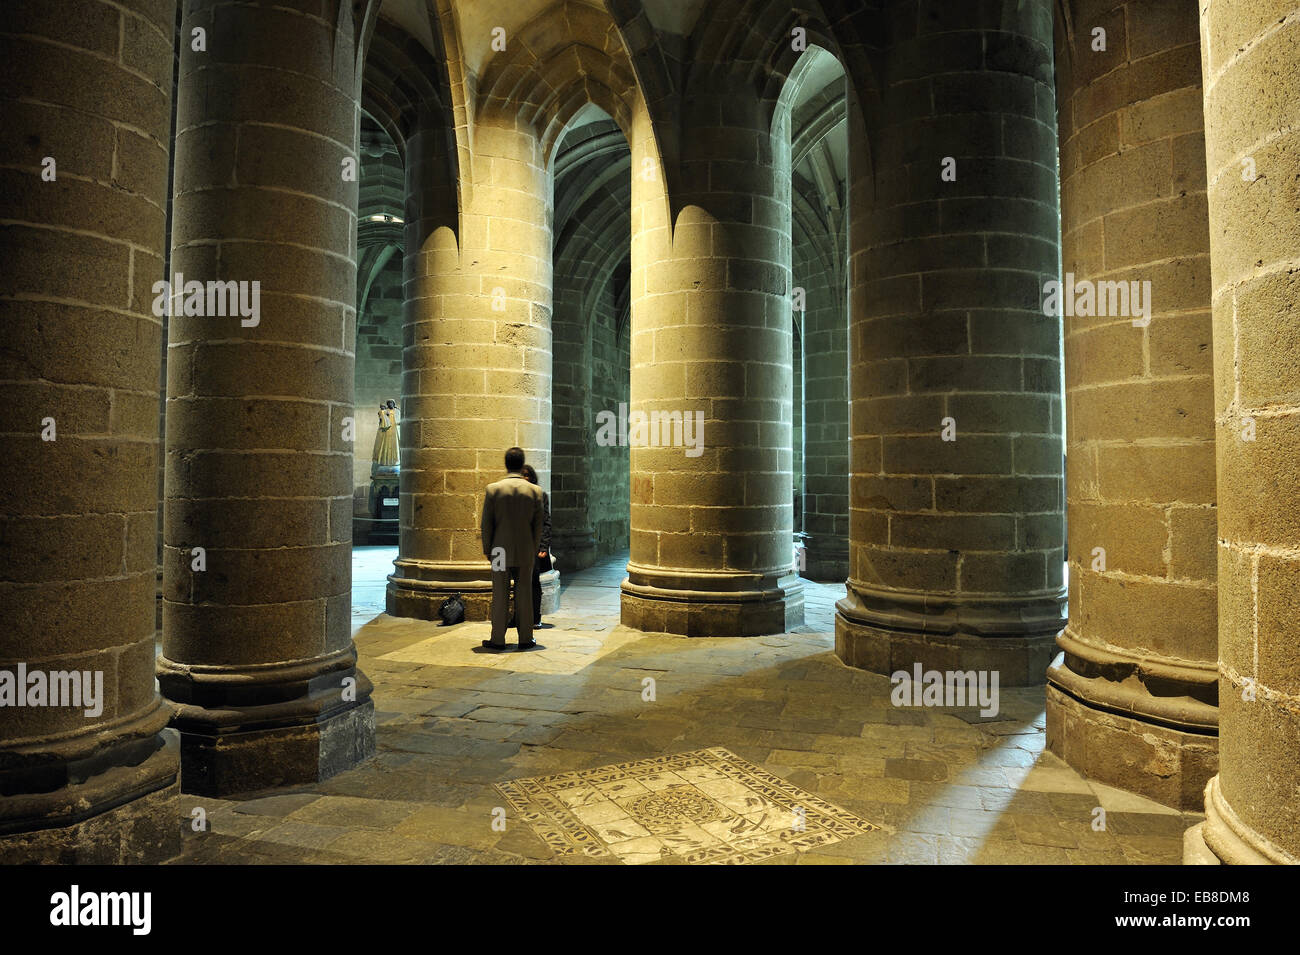 Crypt of the massive pillars, Mont Saint-Michel Abbey, Manche department, Low Normandy region, France, Europe. - Stock Image